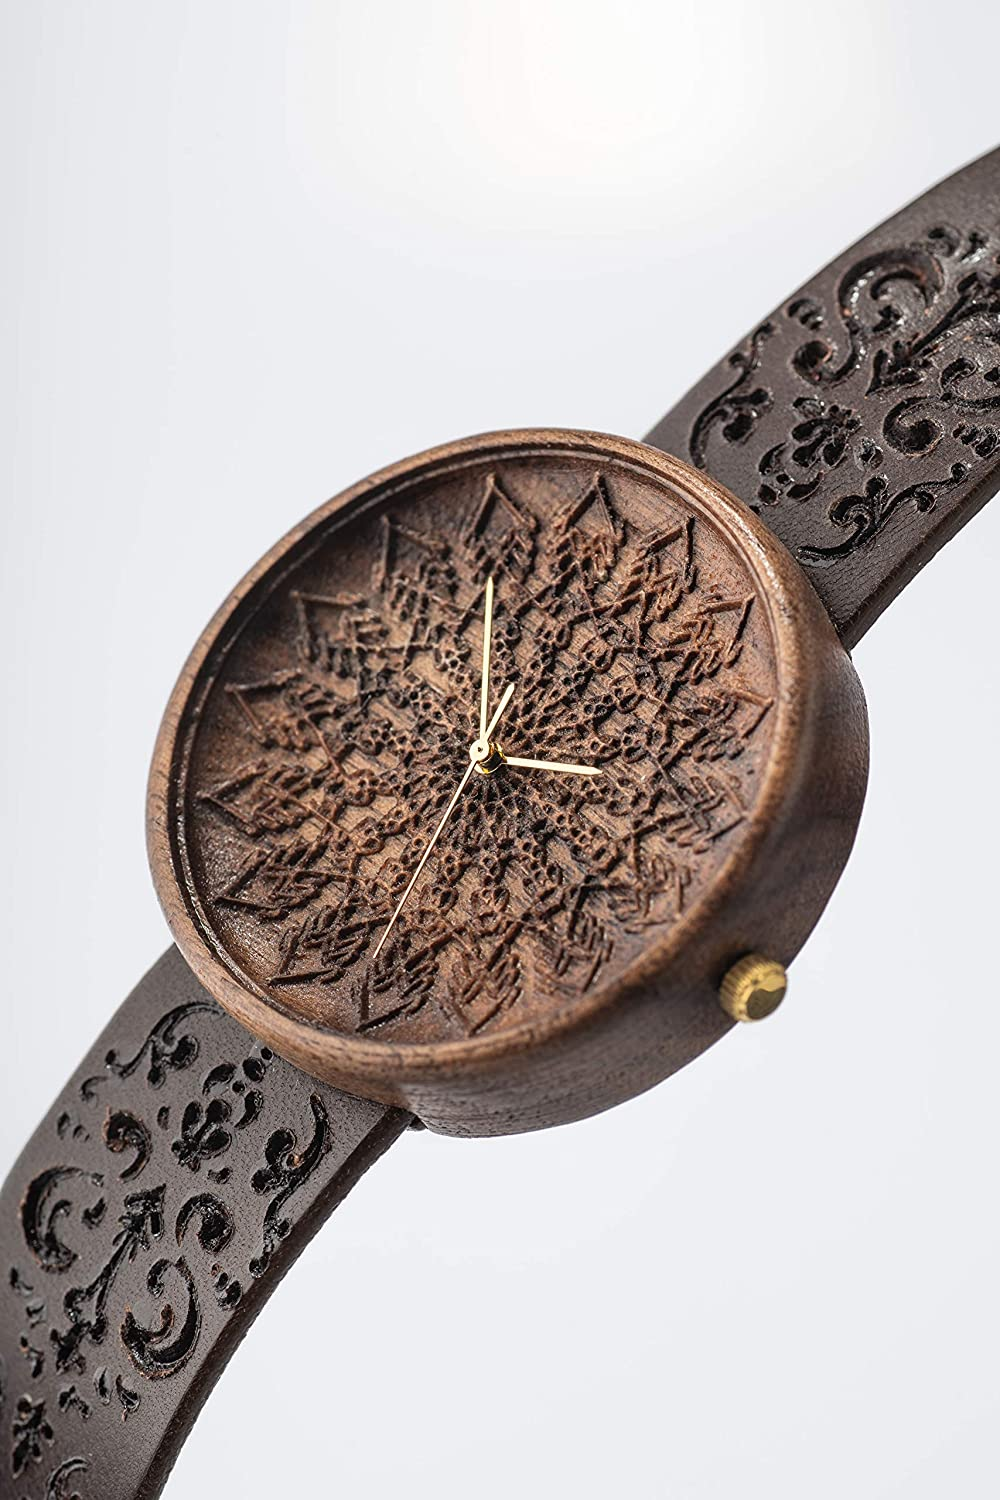 0338b231f Amazon.com: Mens Engraved Wooden Watch Zelus, Swiss Movement, Engrave Watch  Strap, Sustainable & Natural Gift, Lightweight, Walnut, Handcrafted by Ovi:  ...